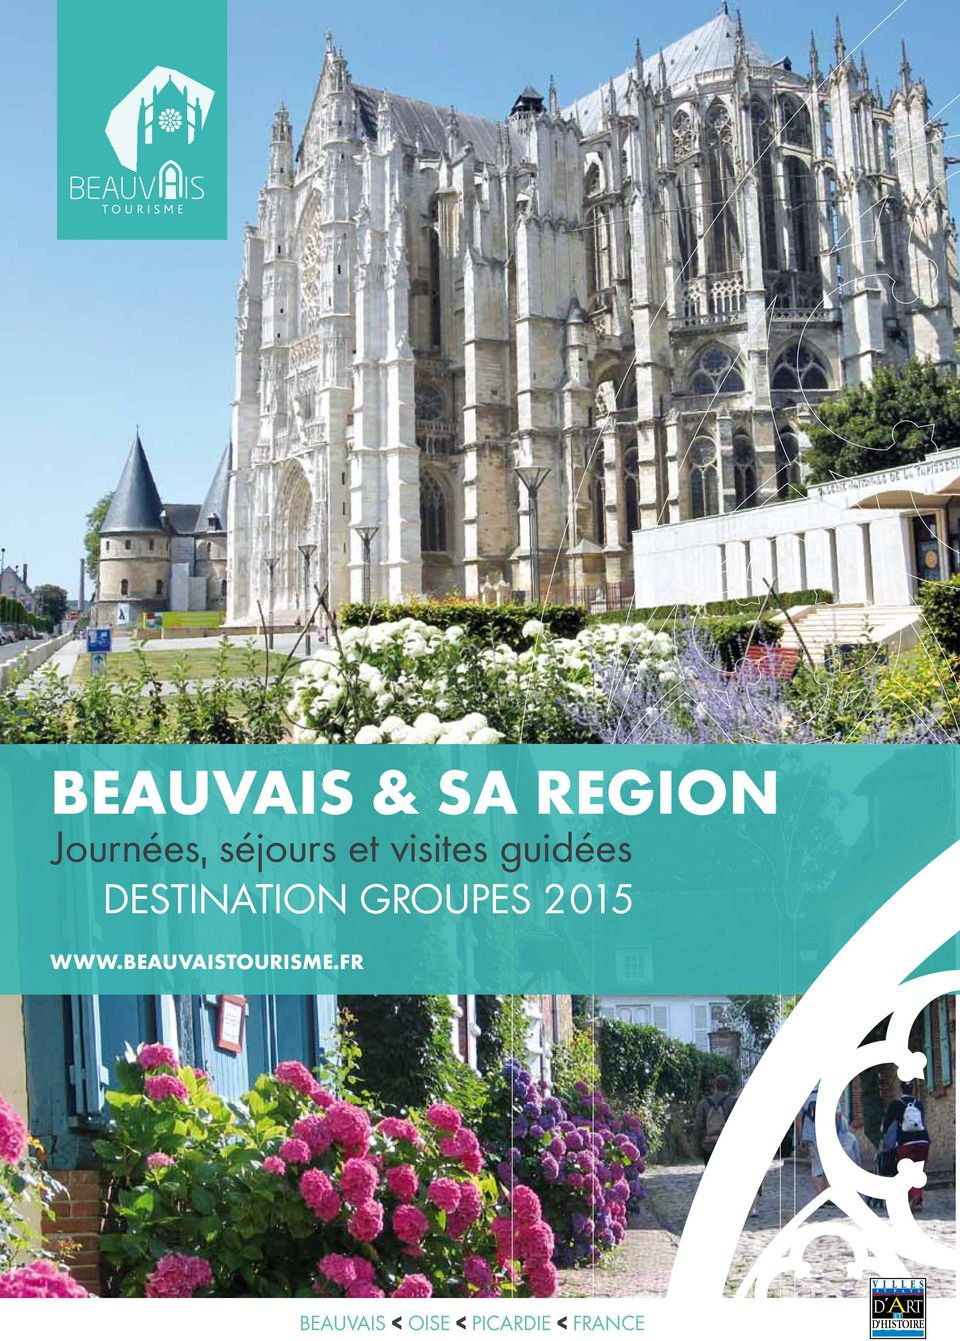 DESTINATION GROUPES 2015 WWW.